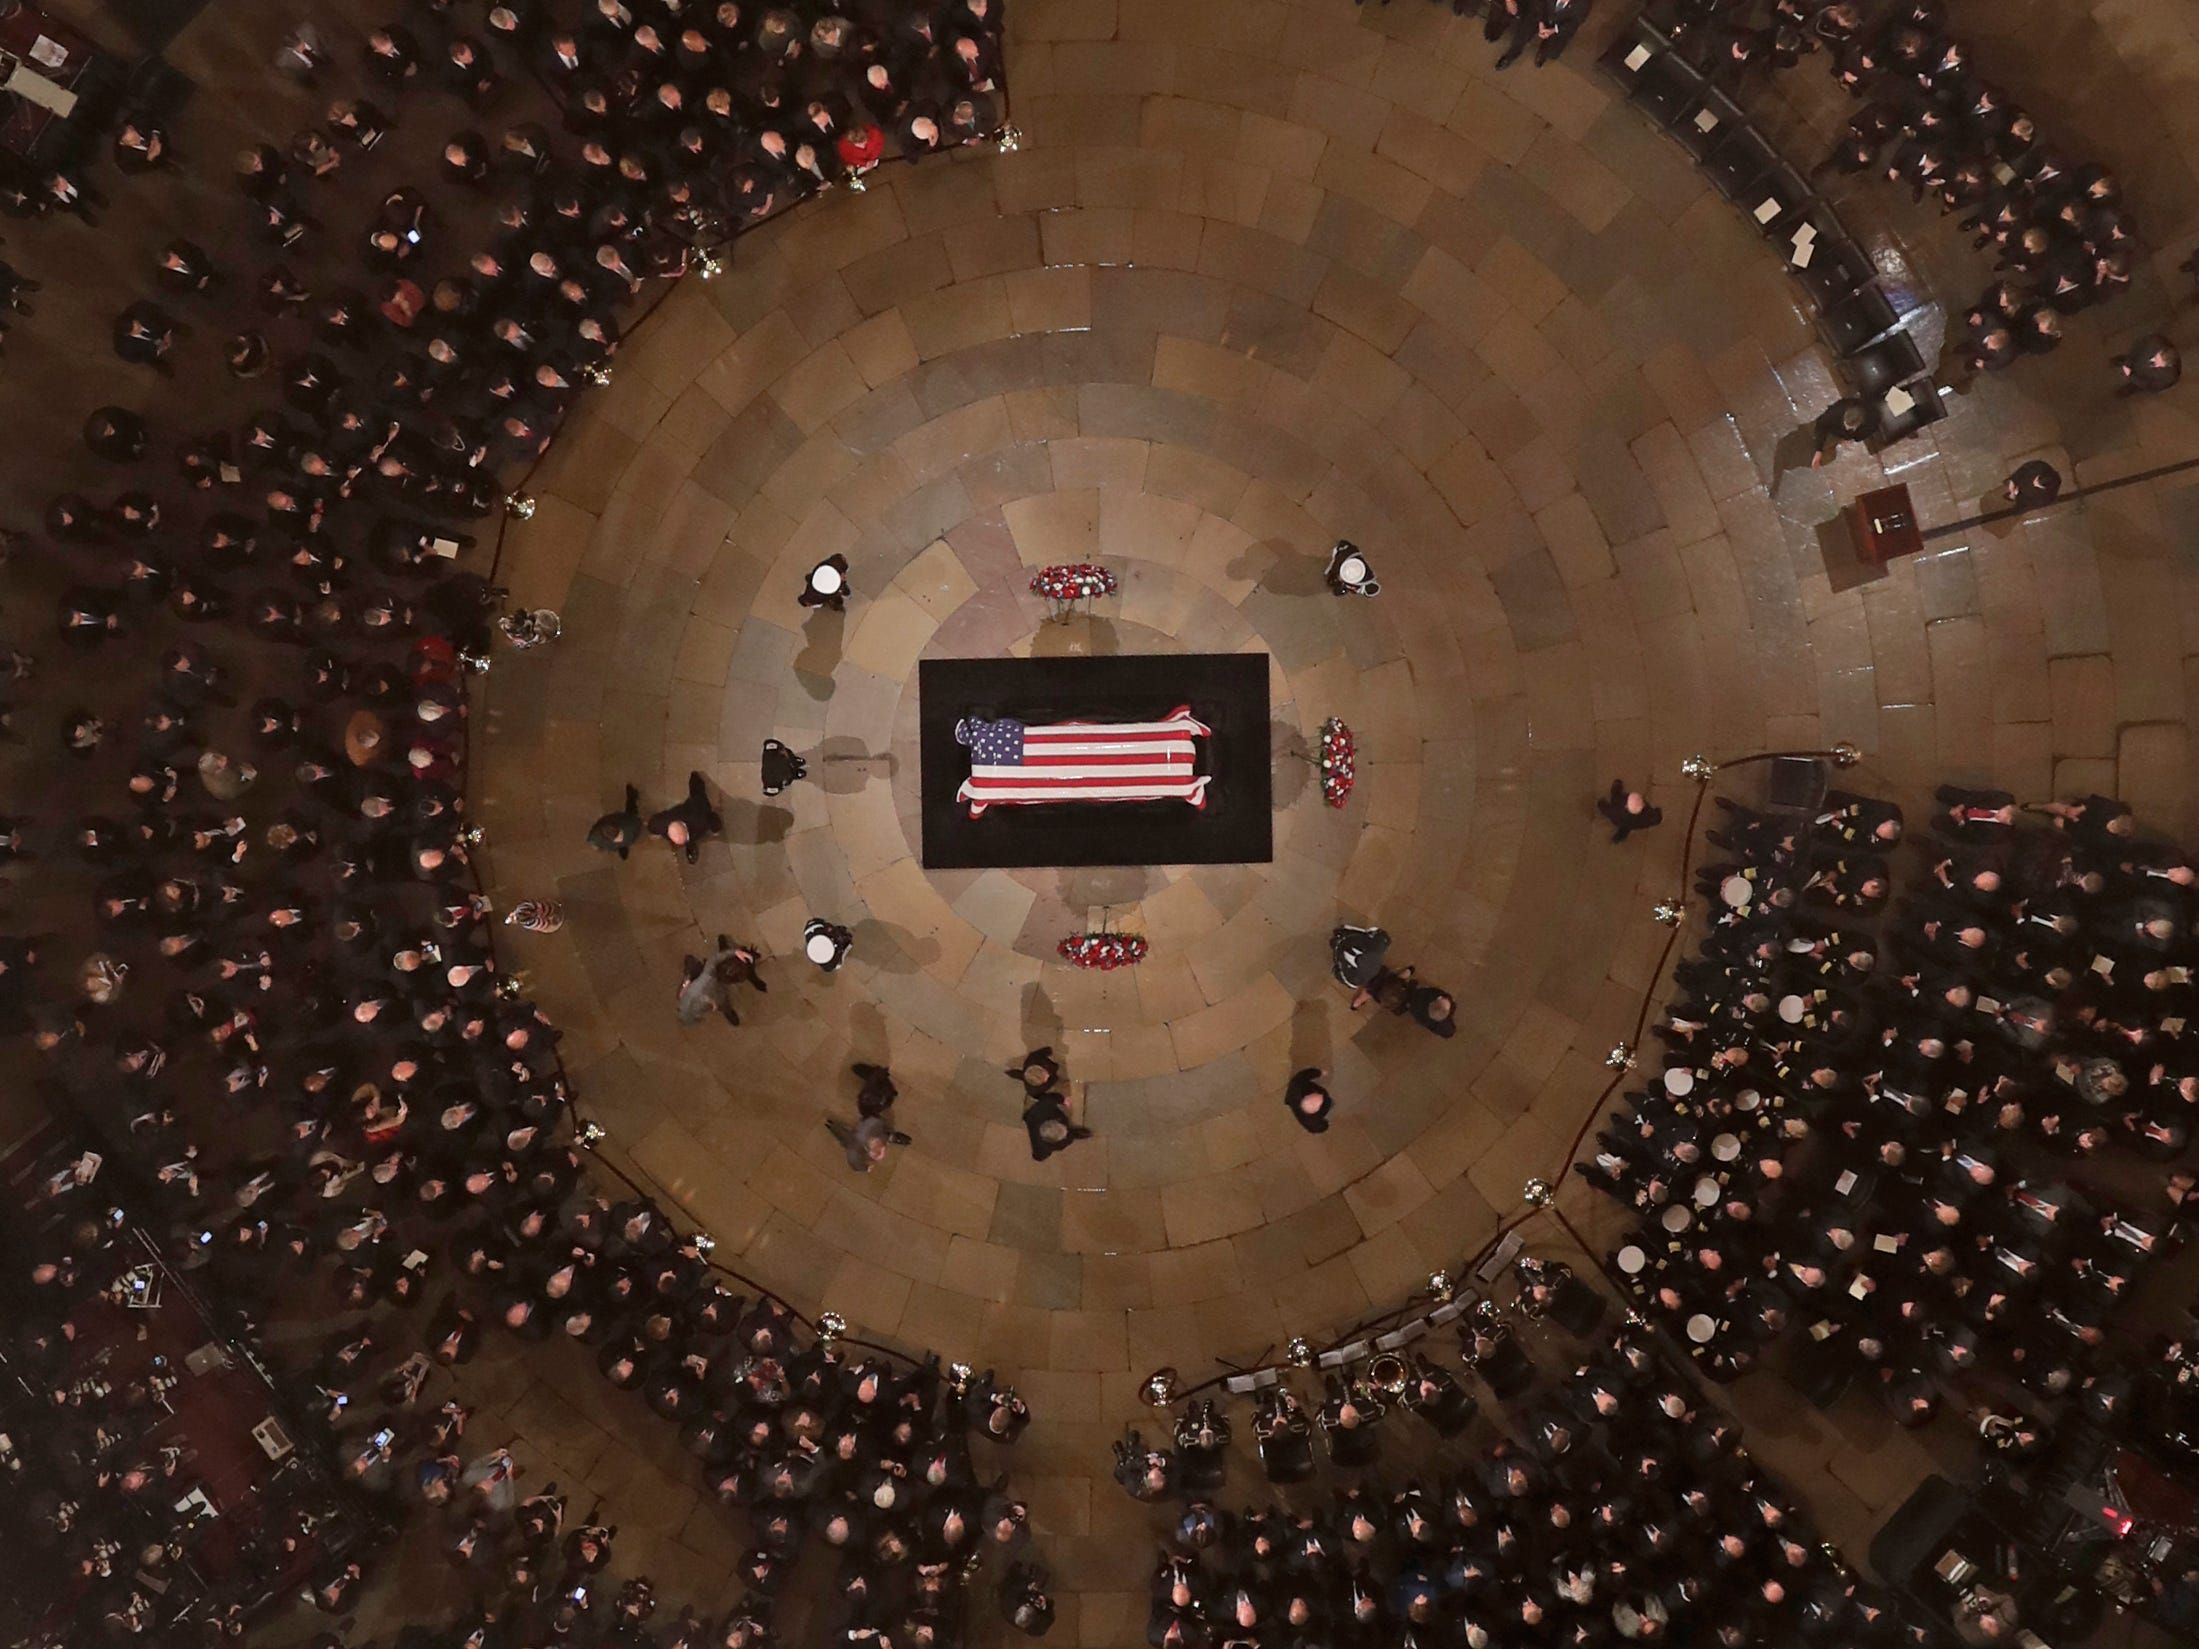 The Bush family walks past the casket of former President George H.W. Bush as he lies in state in the U.S. Capitol Rotunda.